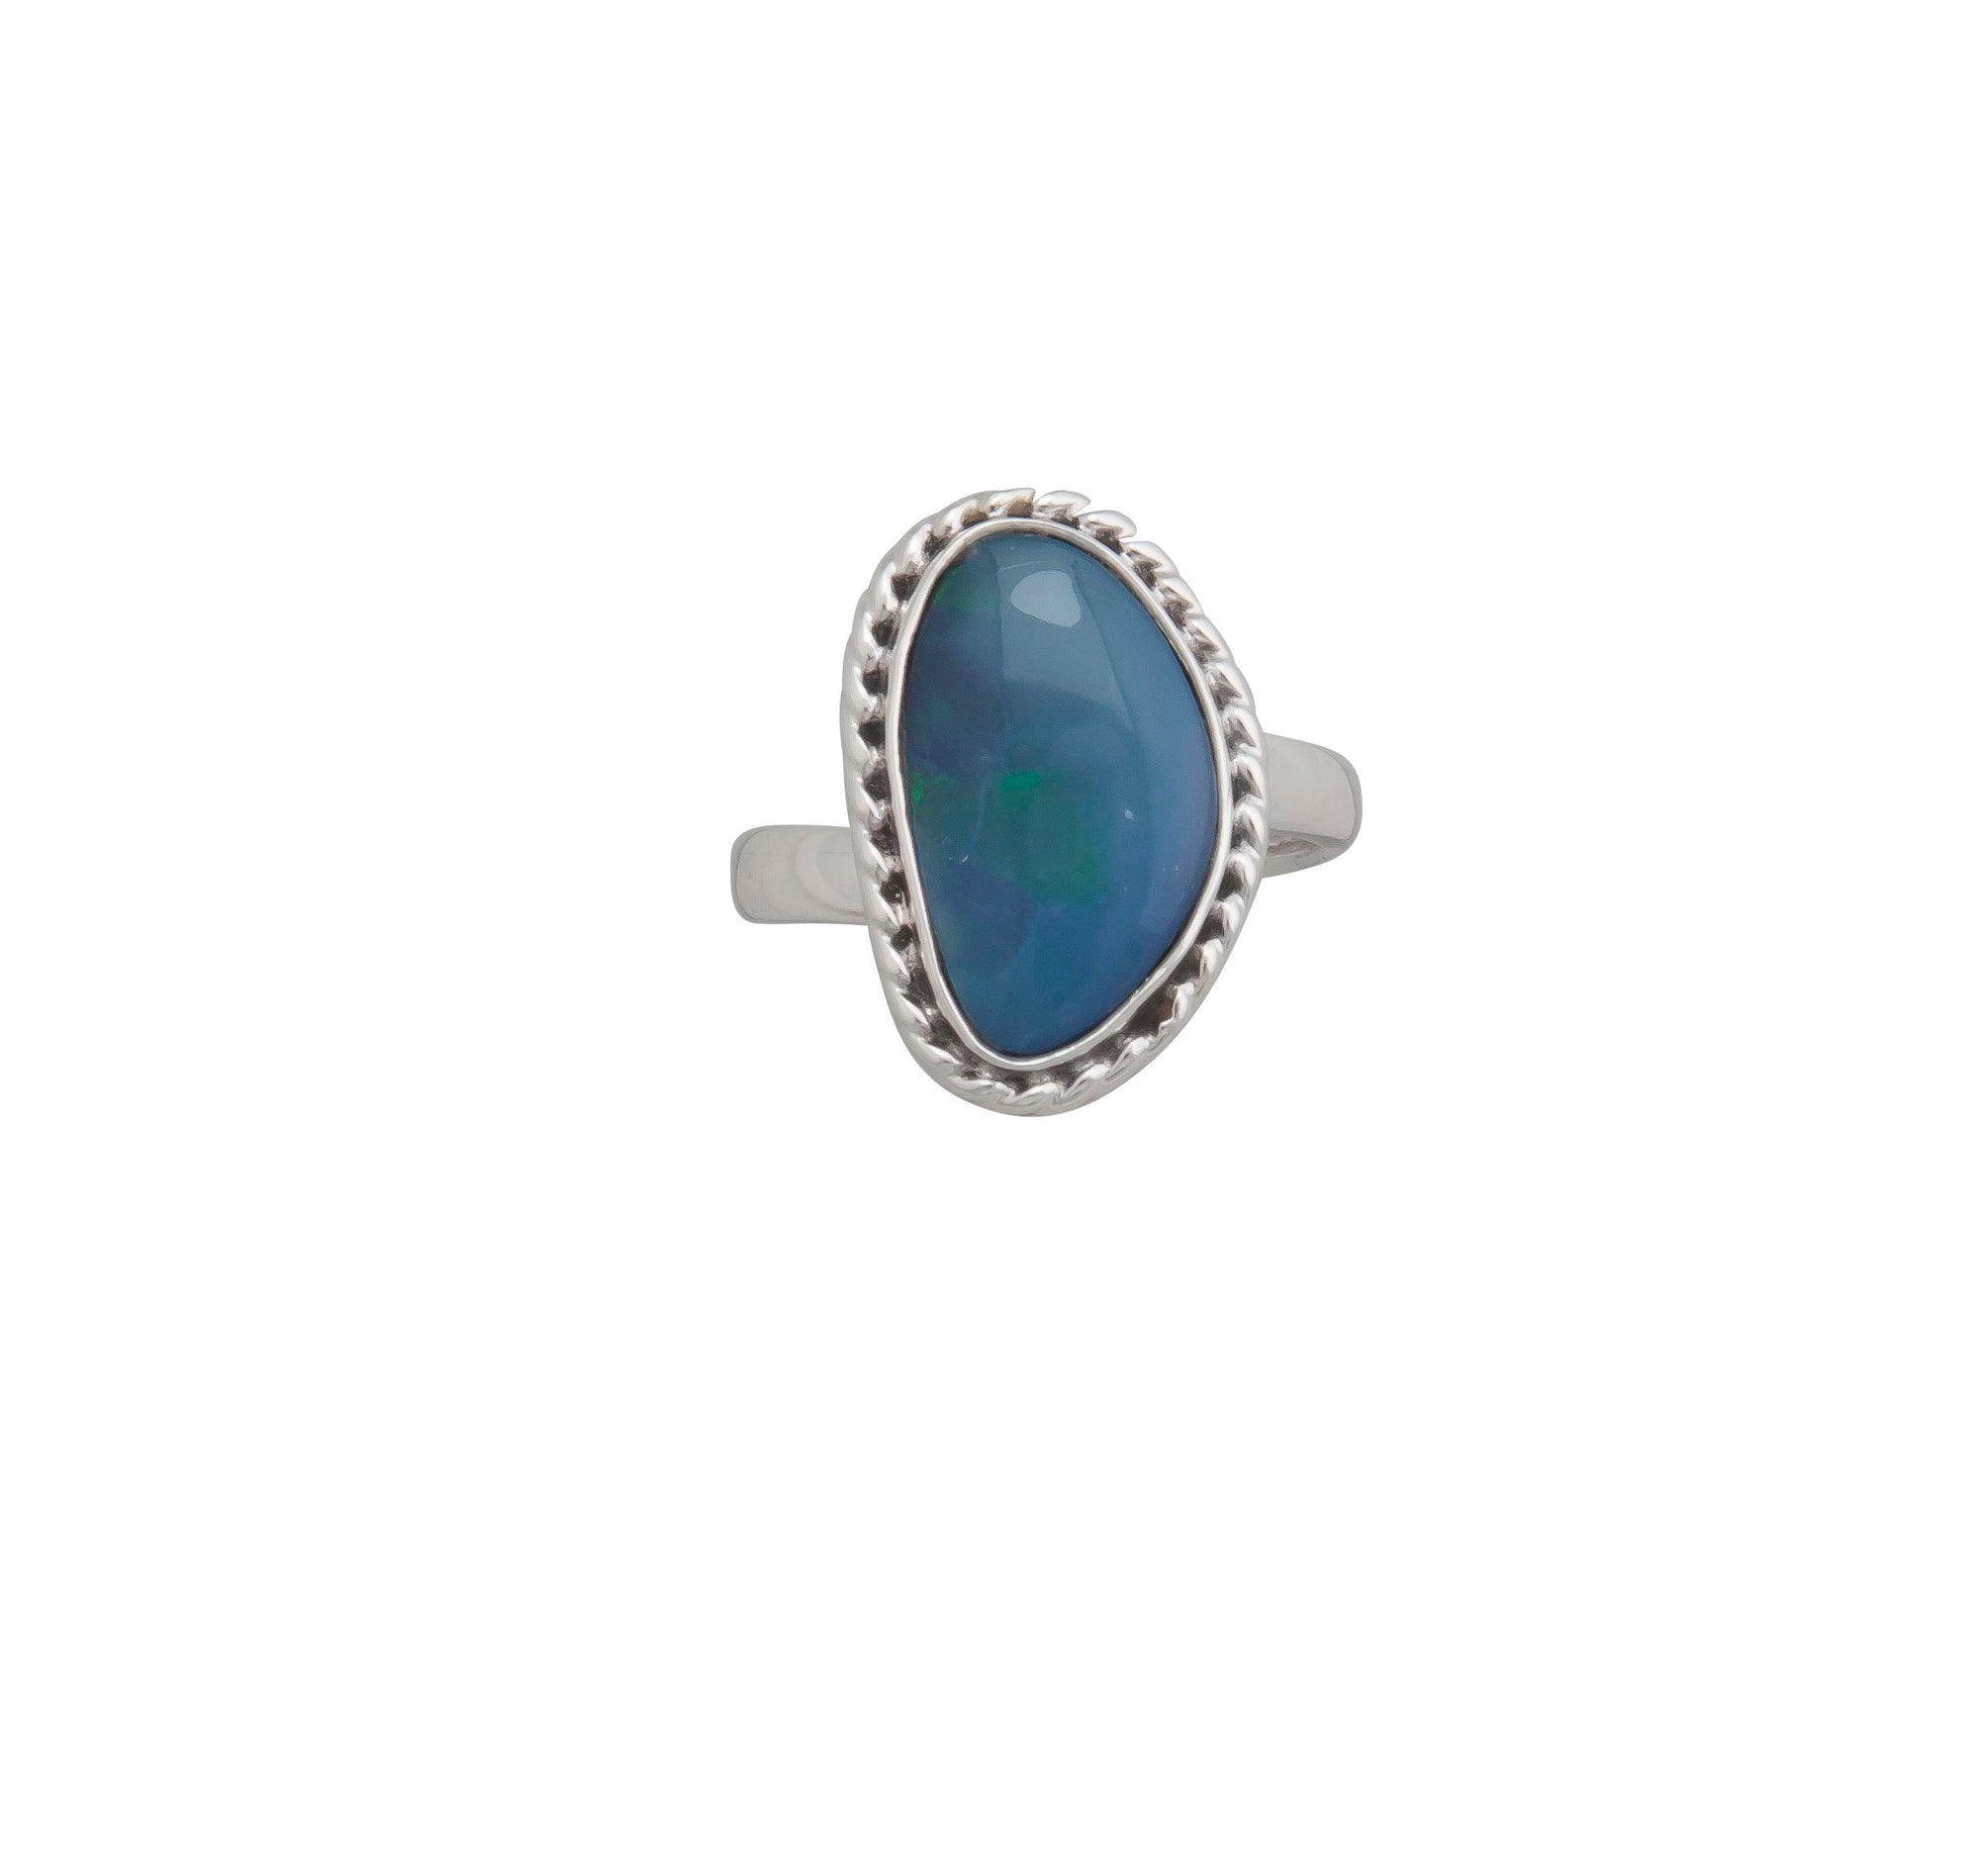 Sterling Silver Australian Blue Opal Adjustable Ring with Detailed Edge | Charles Albert Jewelry